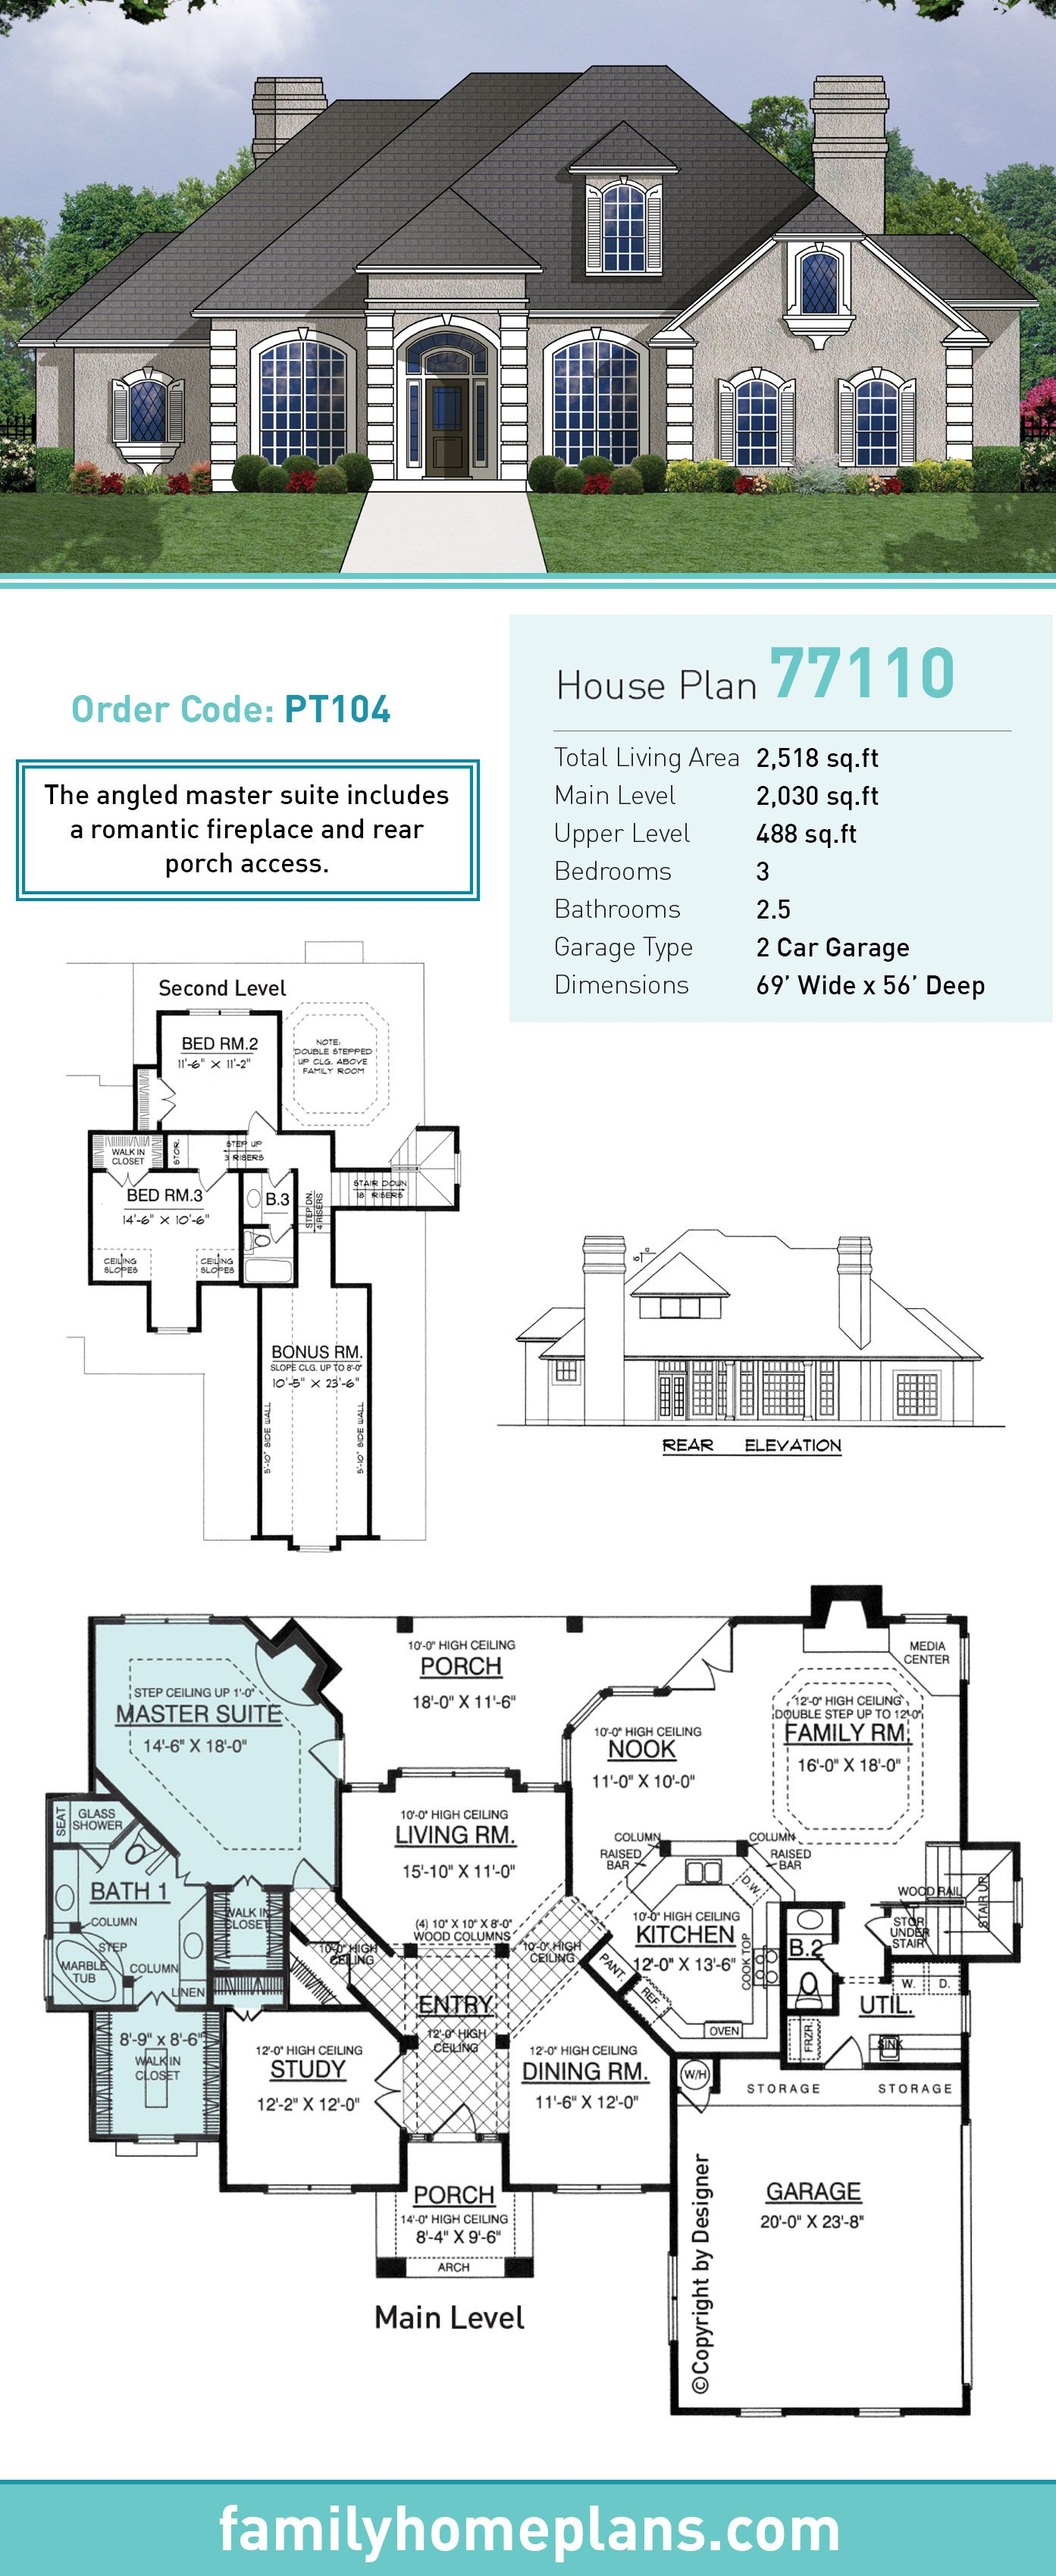 European House Plan Total Living Area SQ FT - House designs with master bedroom at rear